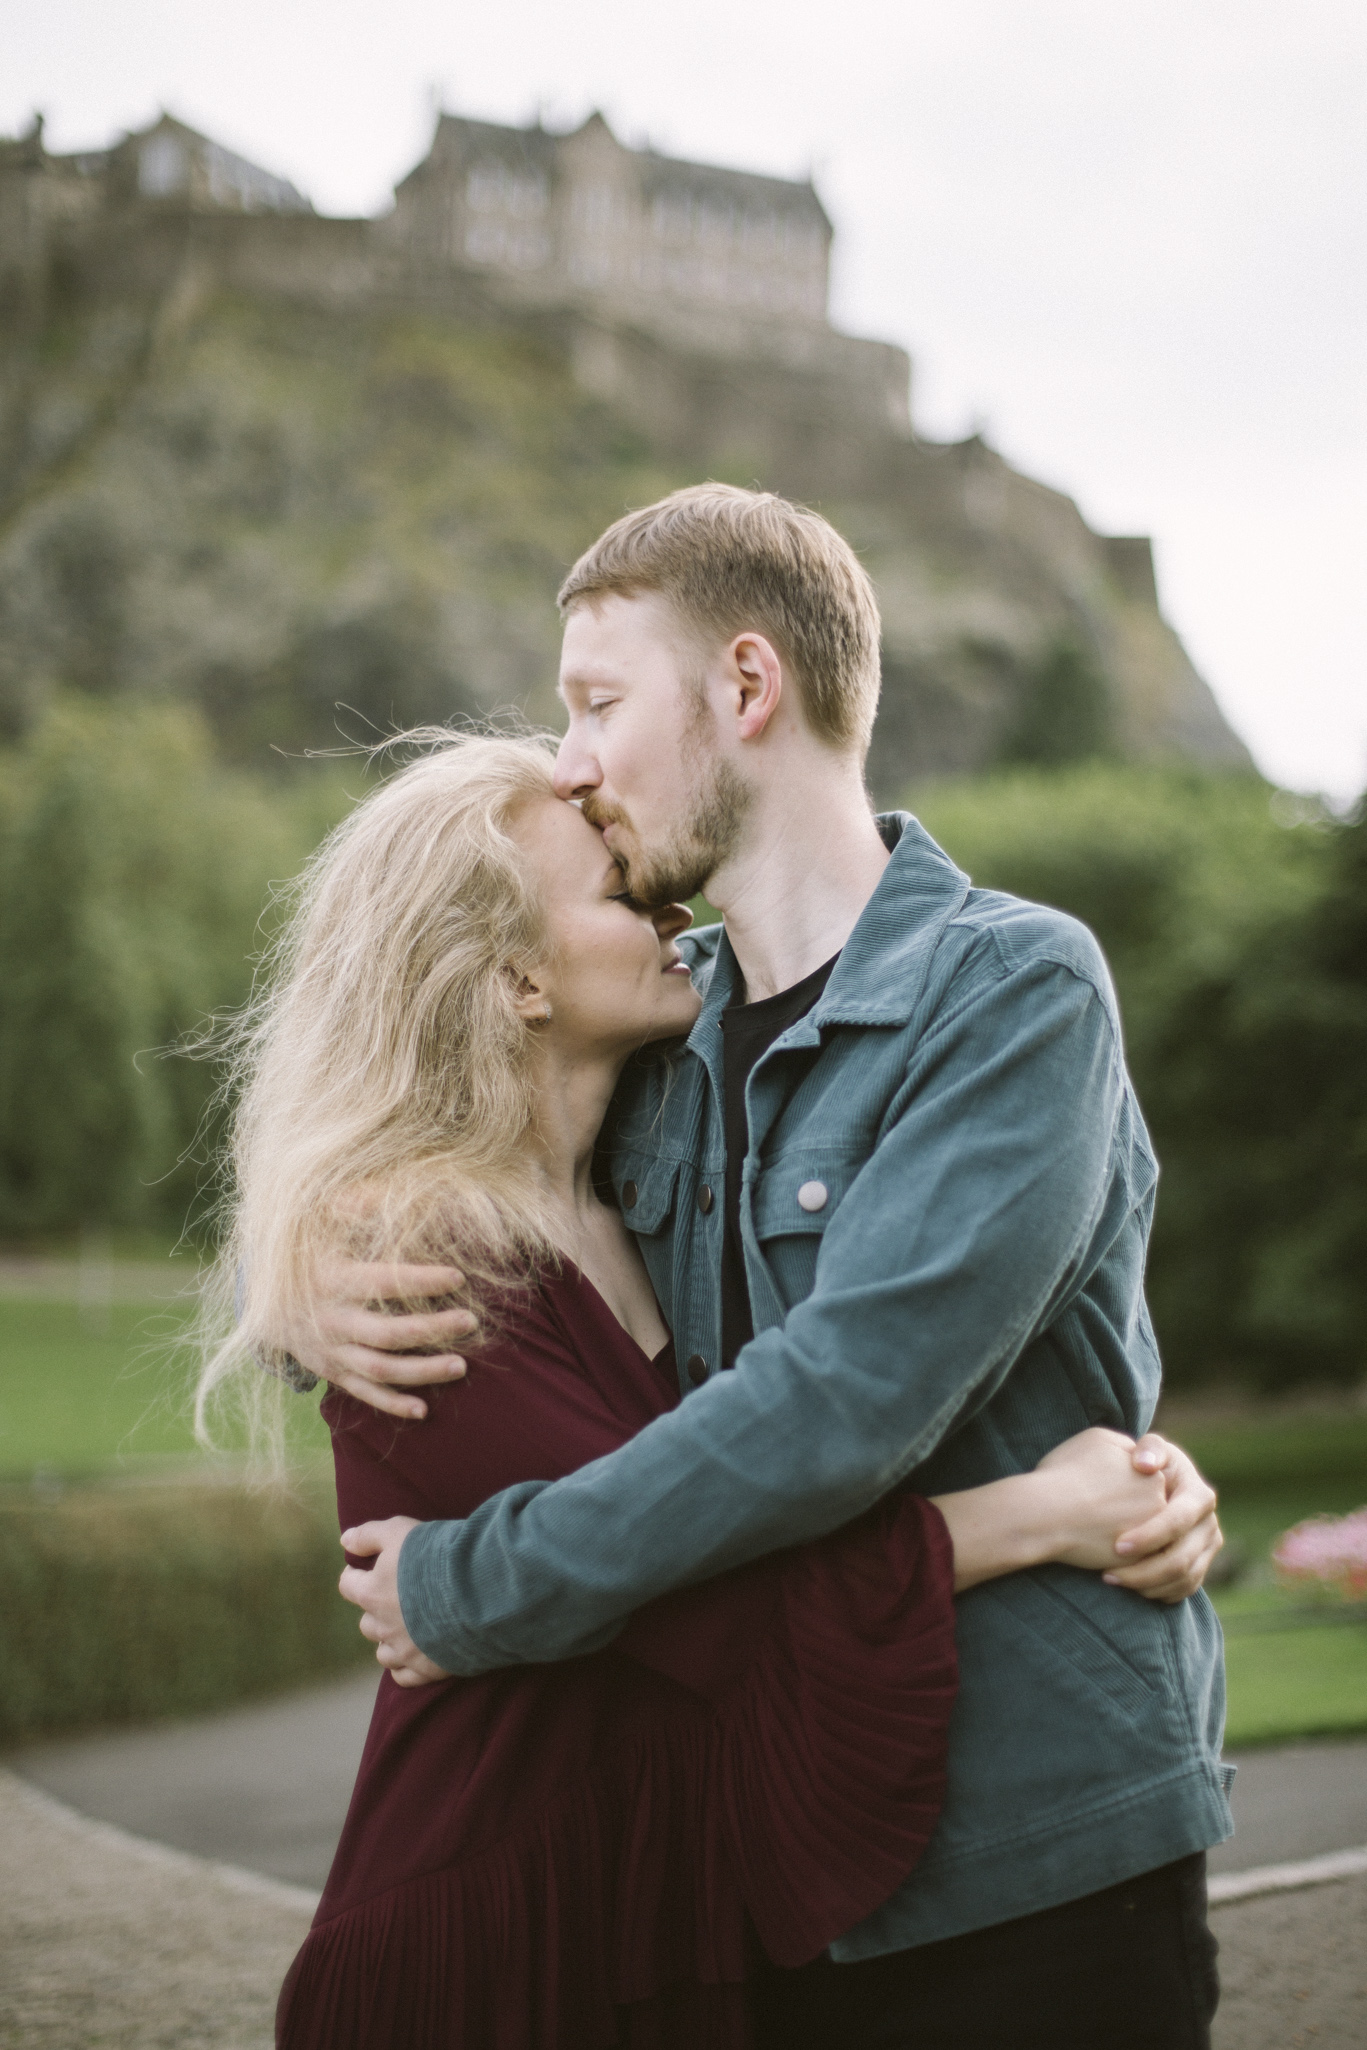 Edinburgh Castle and Princess Street Gardens Old Town Couple Photoshoot | Pre Wedding Photography | Engagement Portraits Scotland | Destination Elopement | Elope in Edinburgh | Couple | Ceranna Photography | Natural Light Photographer